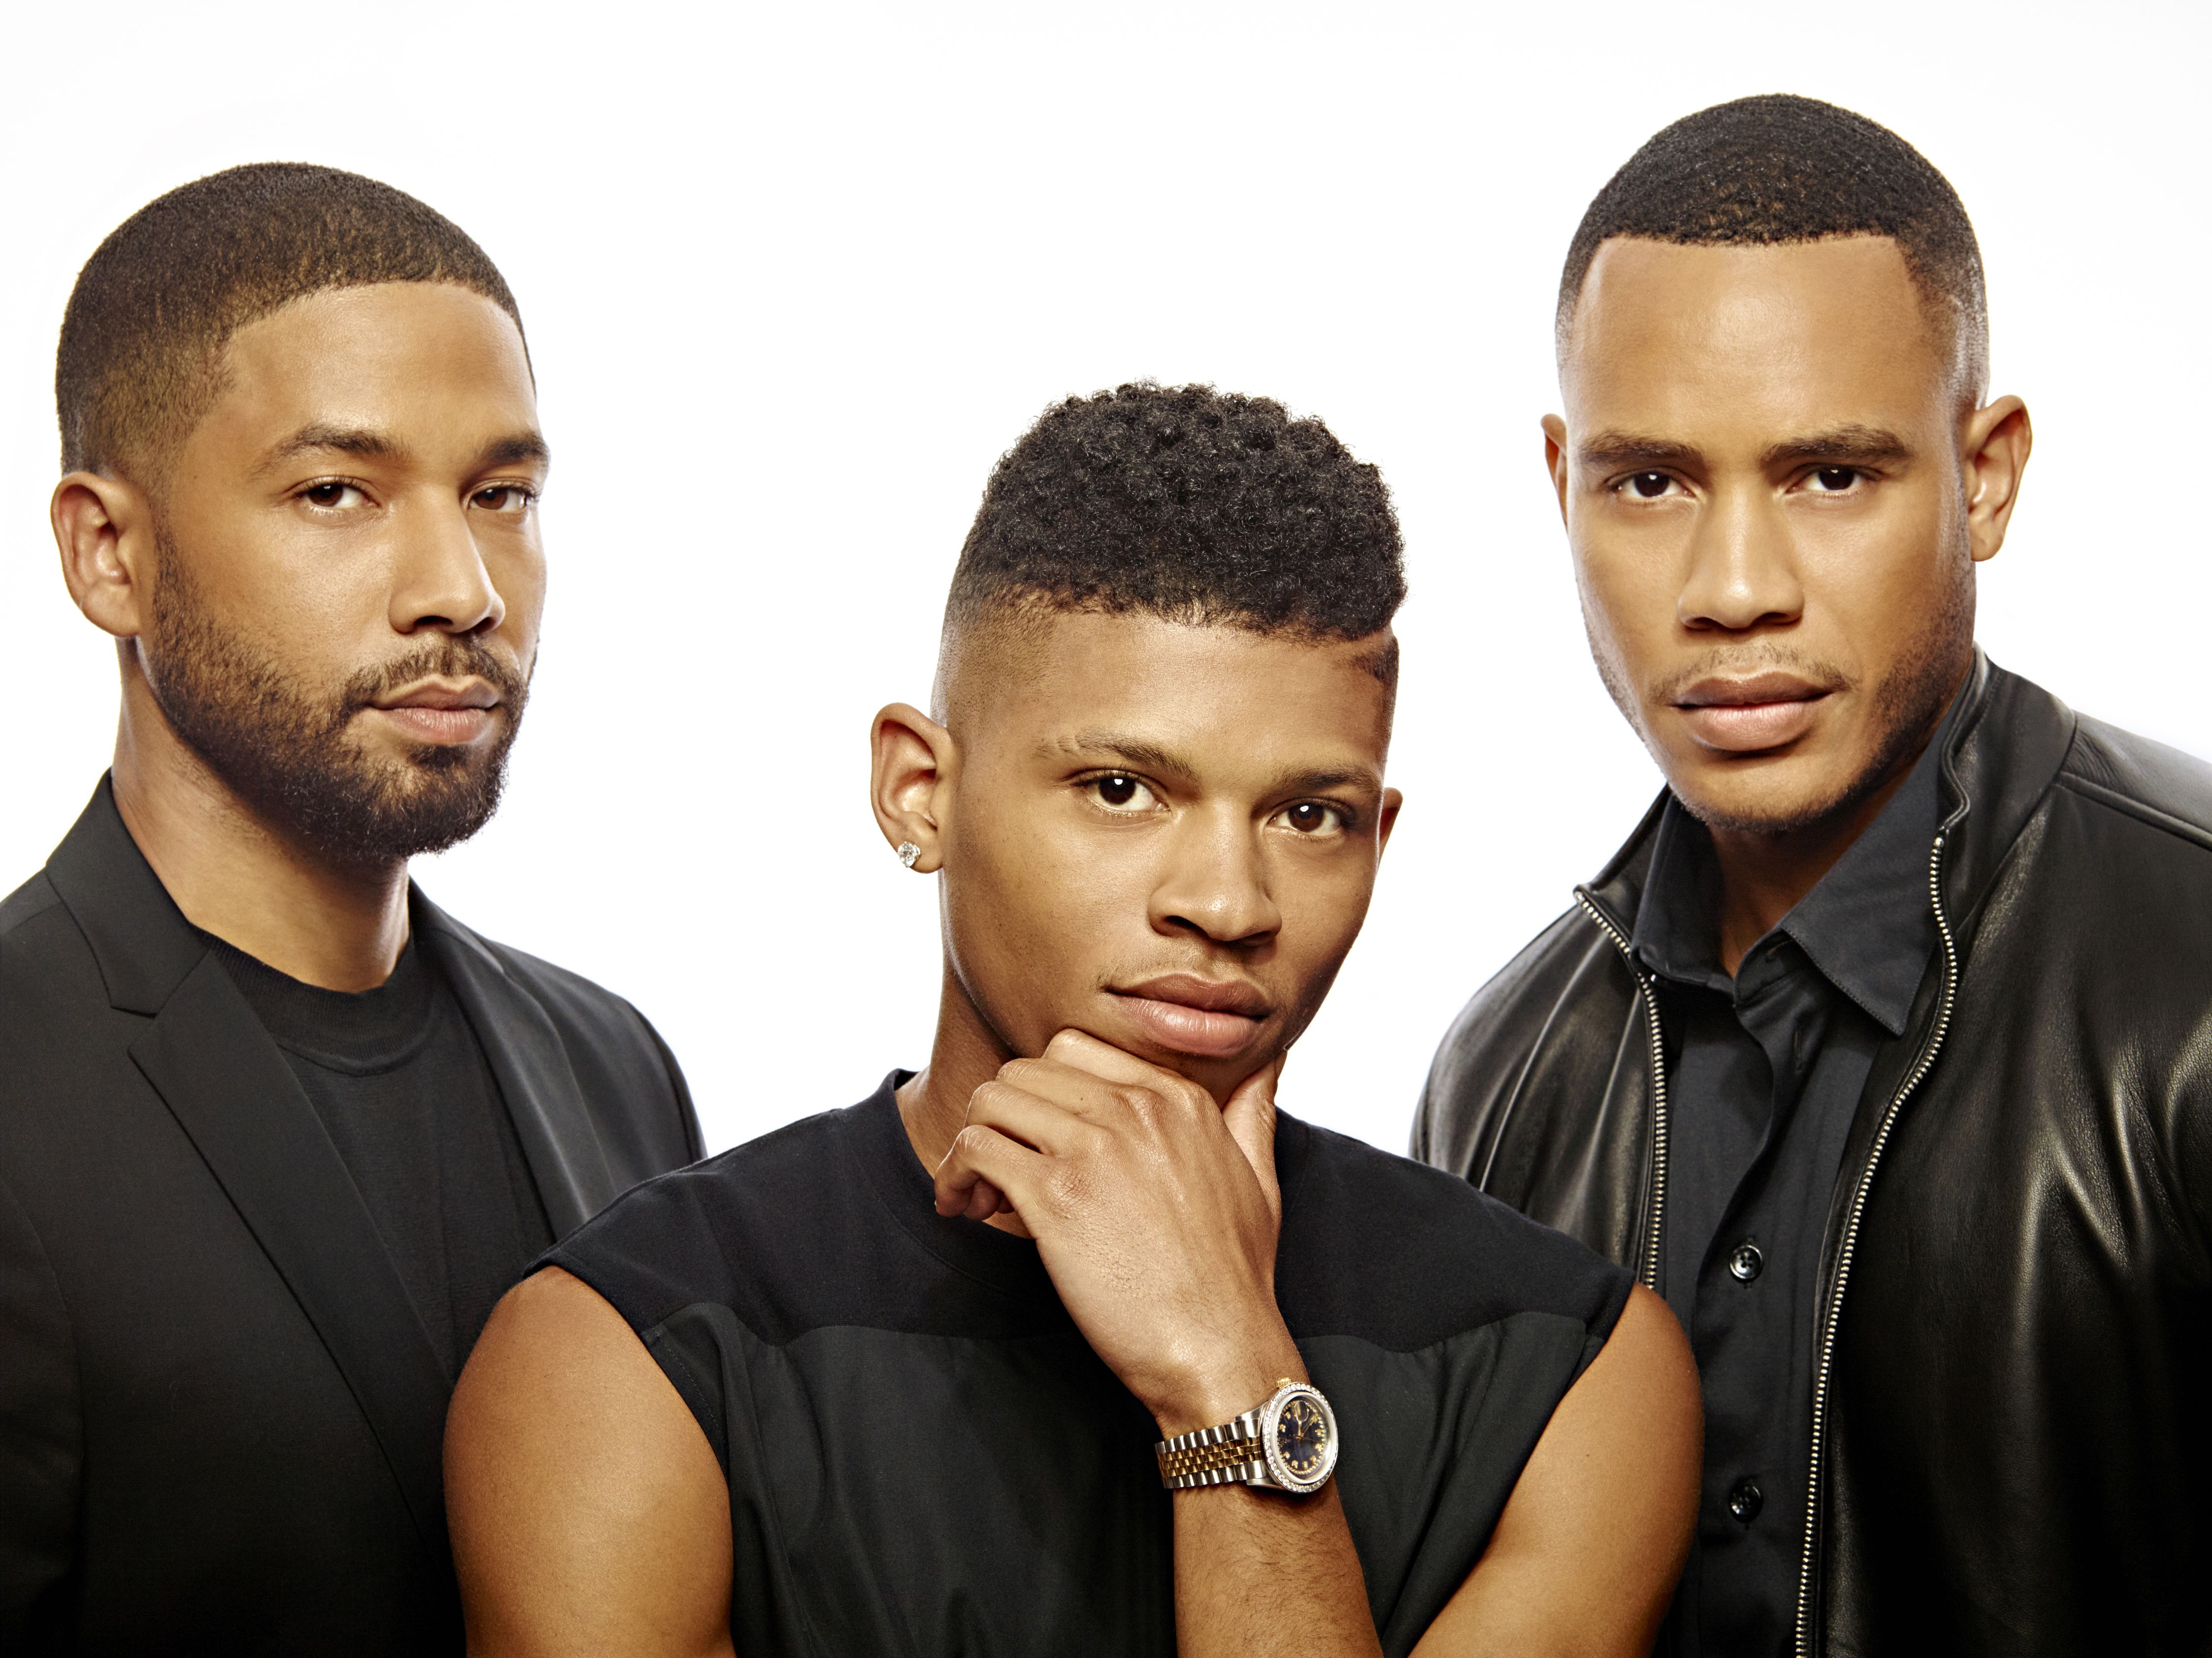 """Watch A Sneak Preview Of Empire Season 2 Episode 11 """"Death Will Have His Day"""" + Empire Returns In March 2016 - http://hitshowstowatch.com/watch-a-sneak-preview-of-empire-season-2-episode-11-death-will-have-his-day-empire-returns-in-march-2016/"""